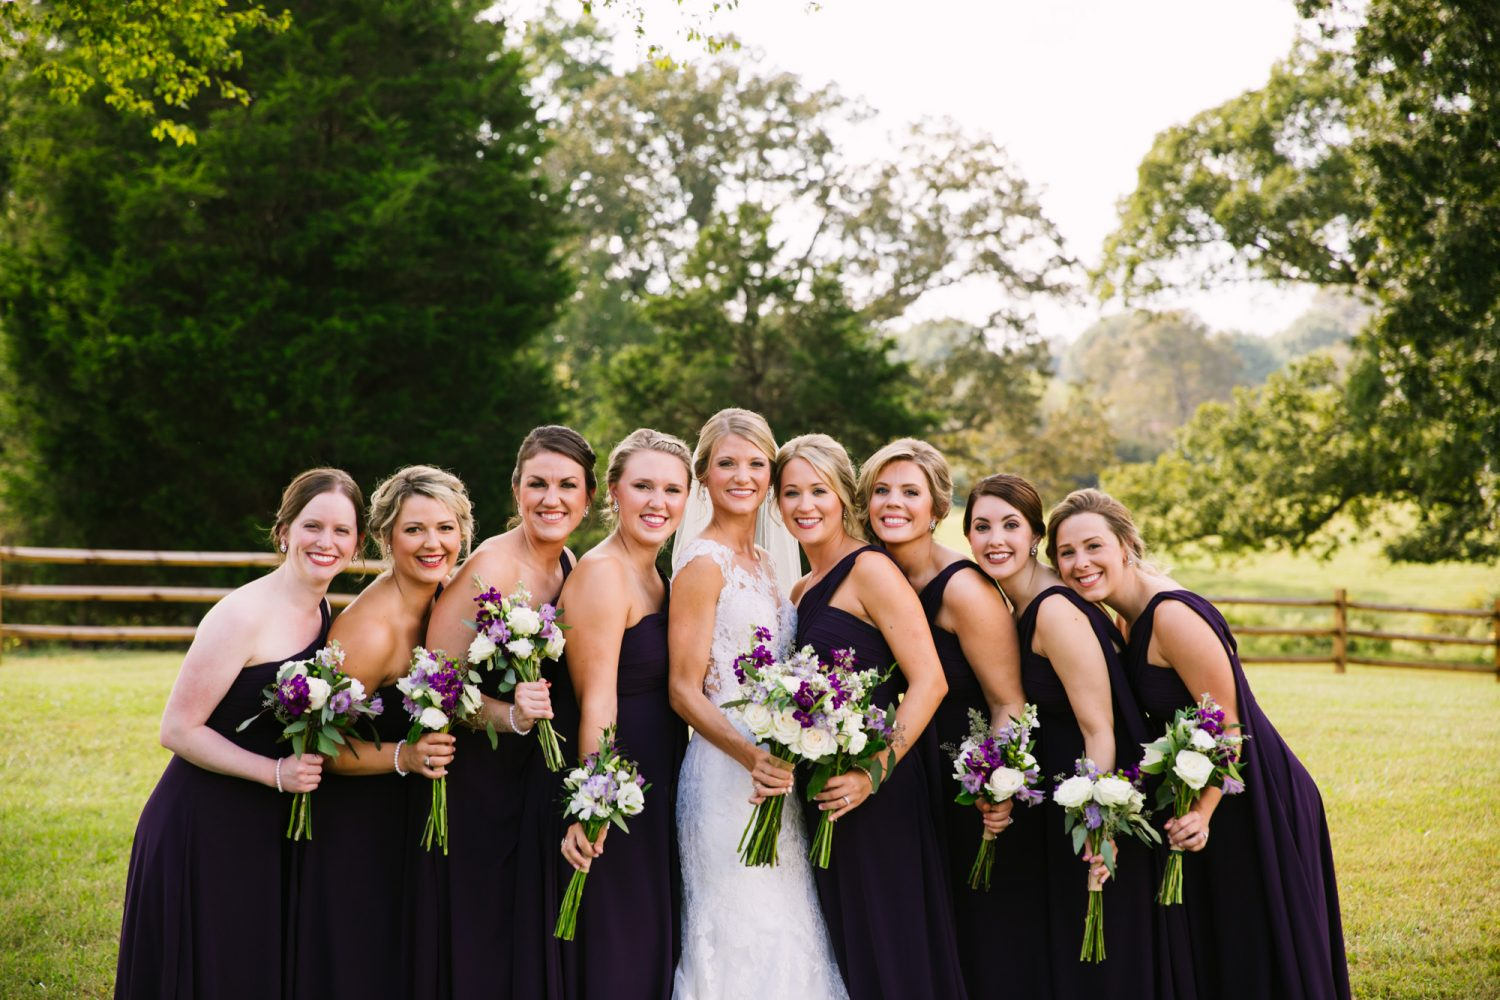 Waynesville, NC Wedding Photography | Bride and Bridesmaids Hugging